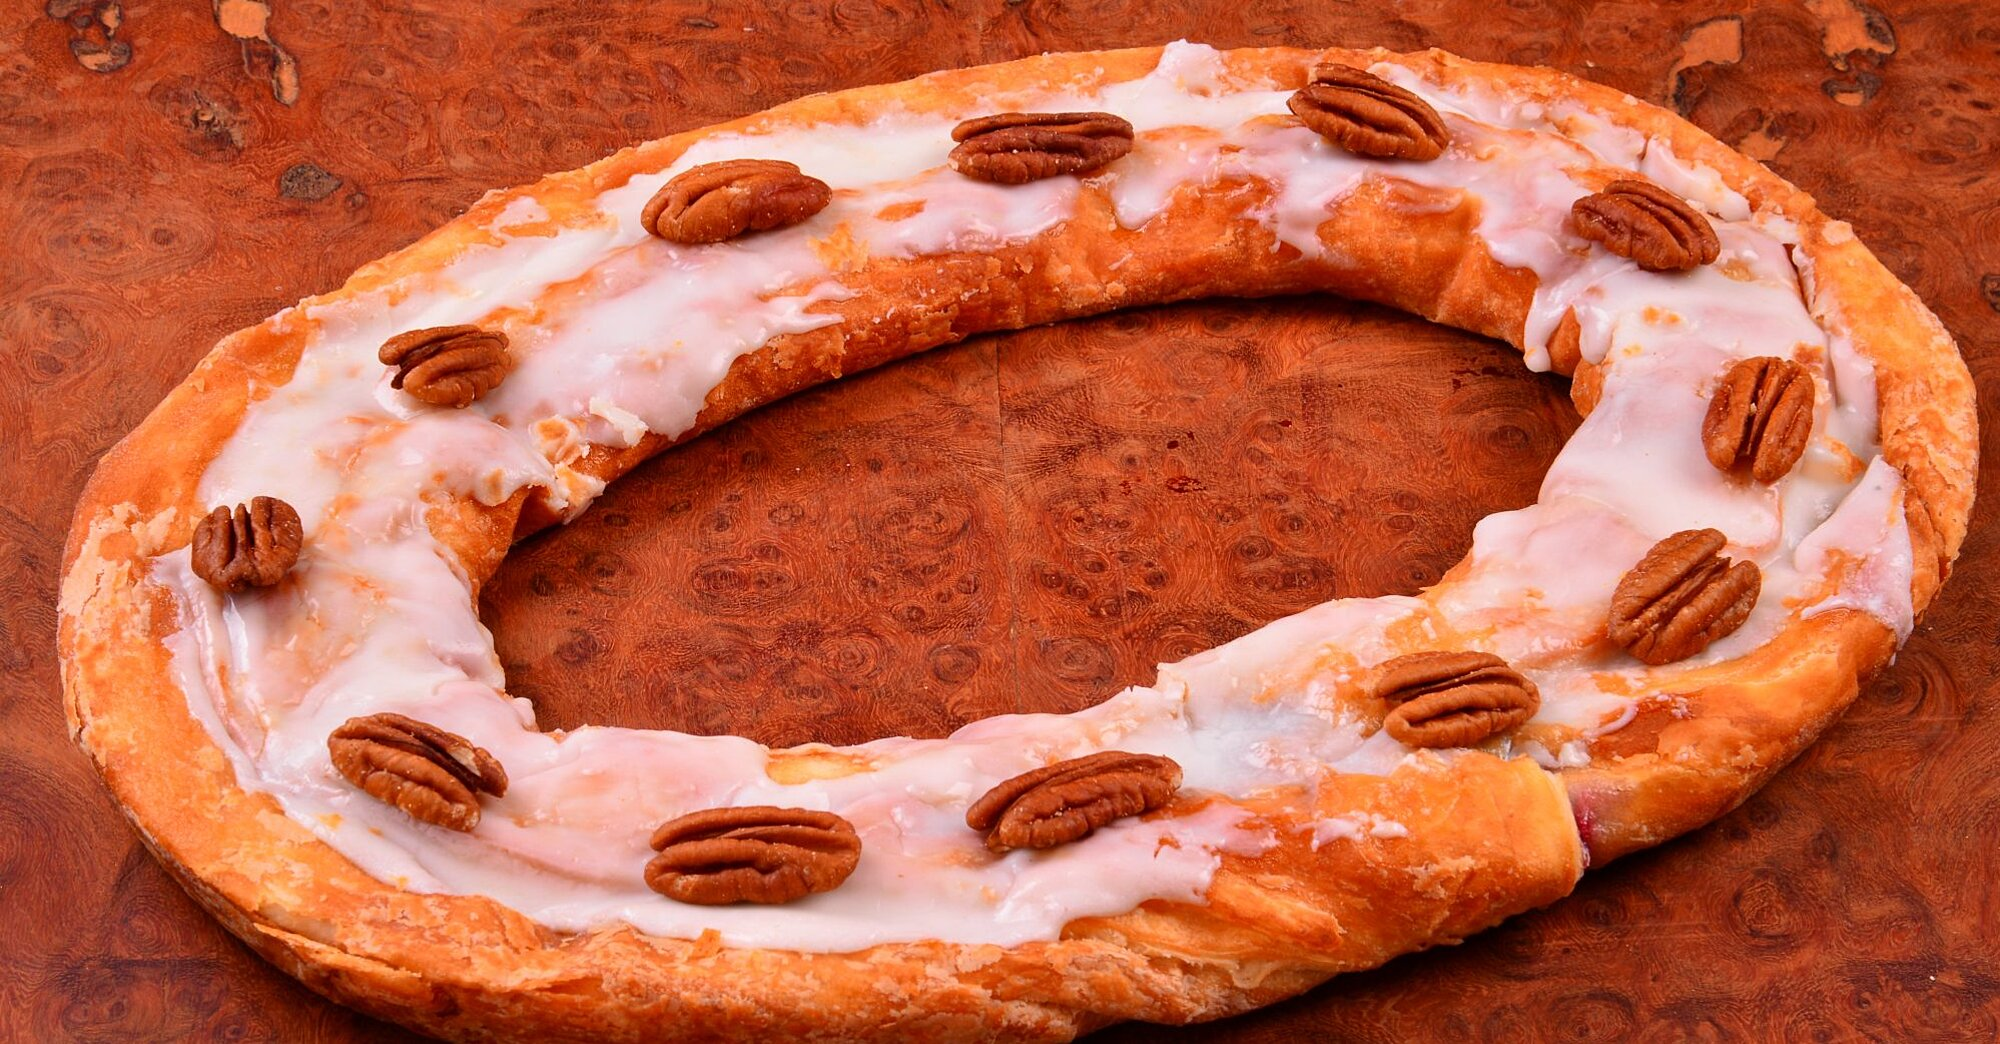 What Is a Kringle and How Do You Make One at Home?